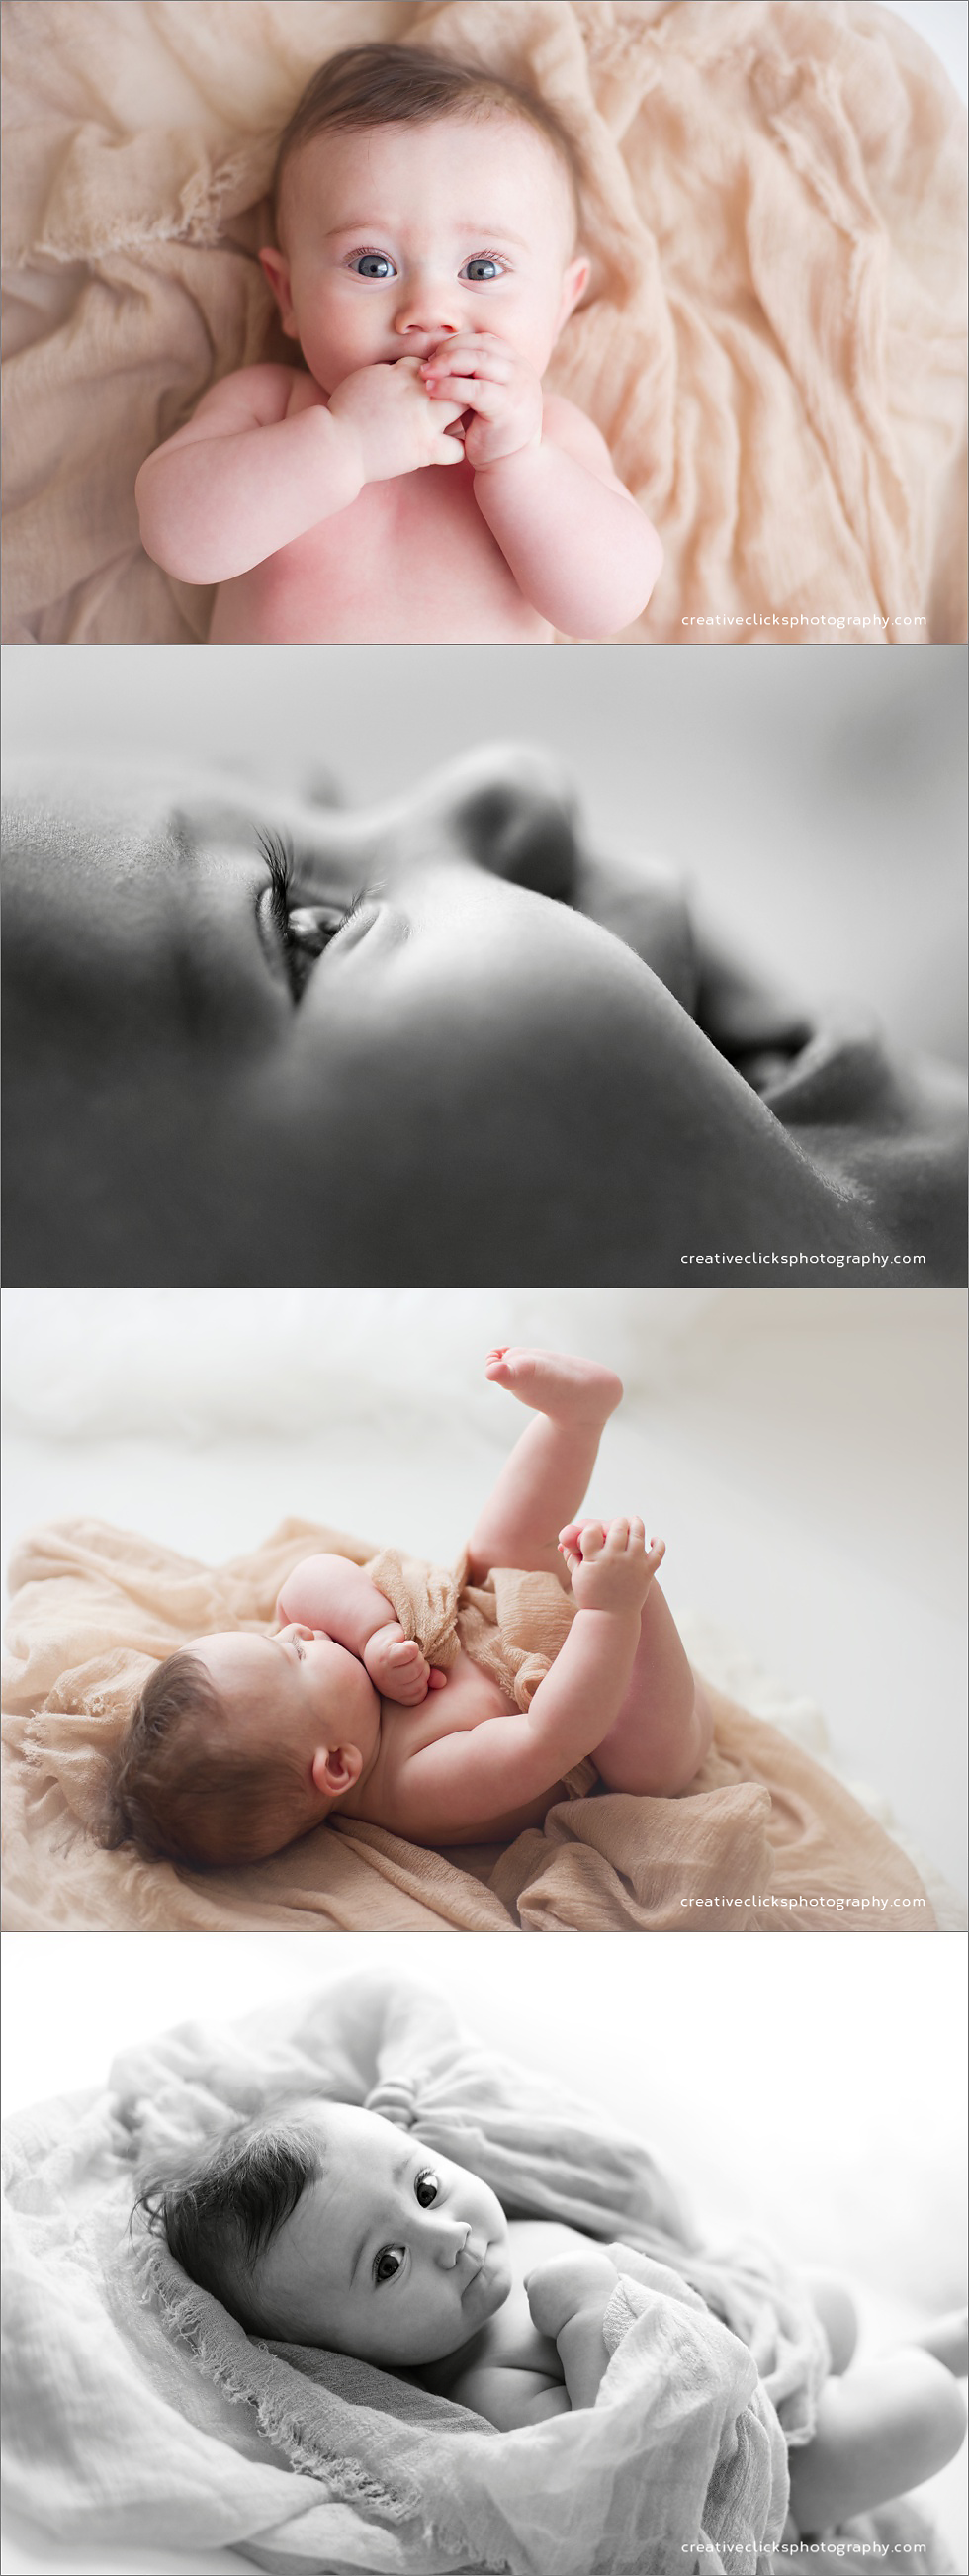 beautiful baby pictures 5 months old